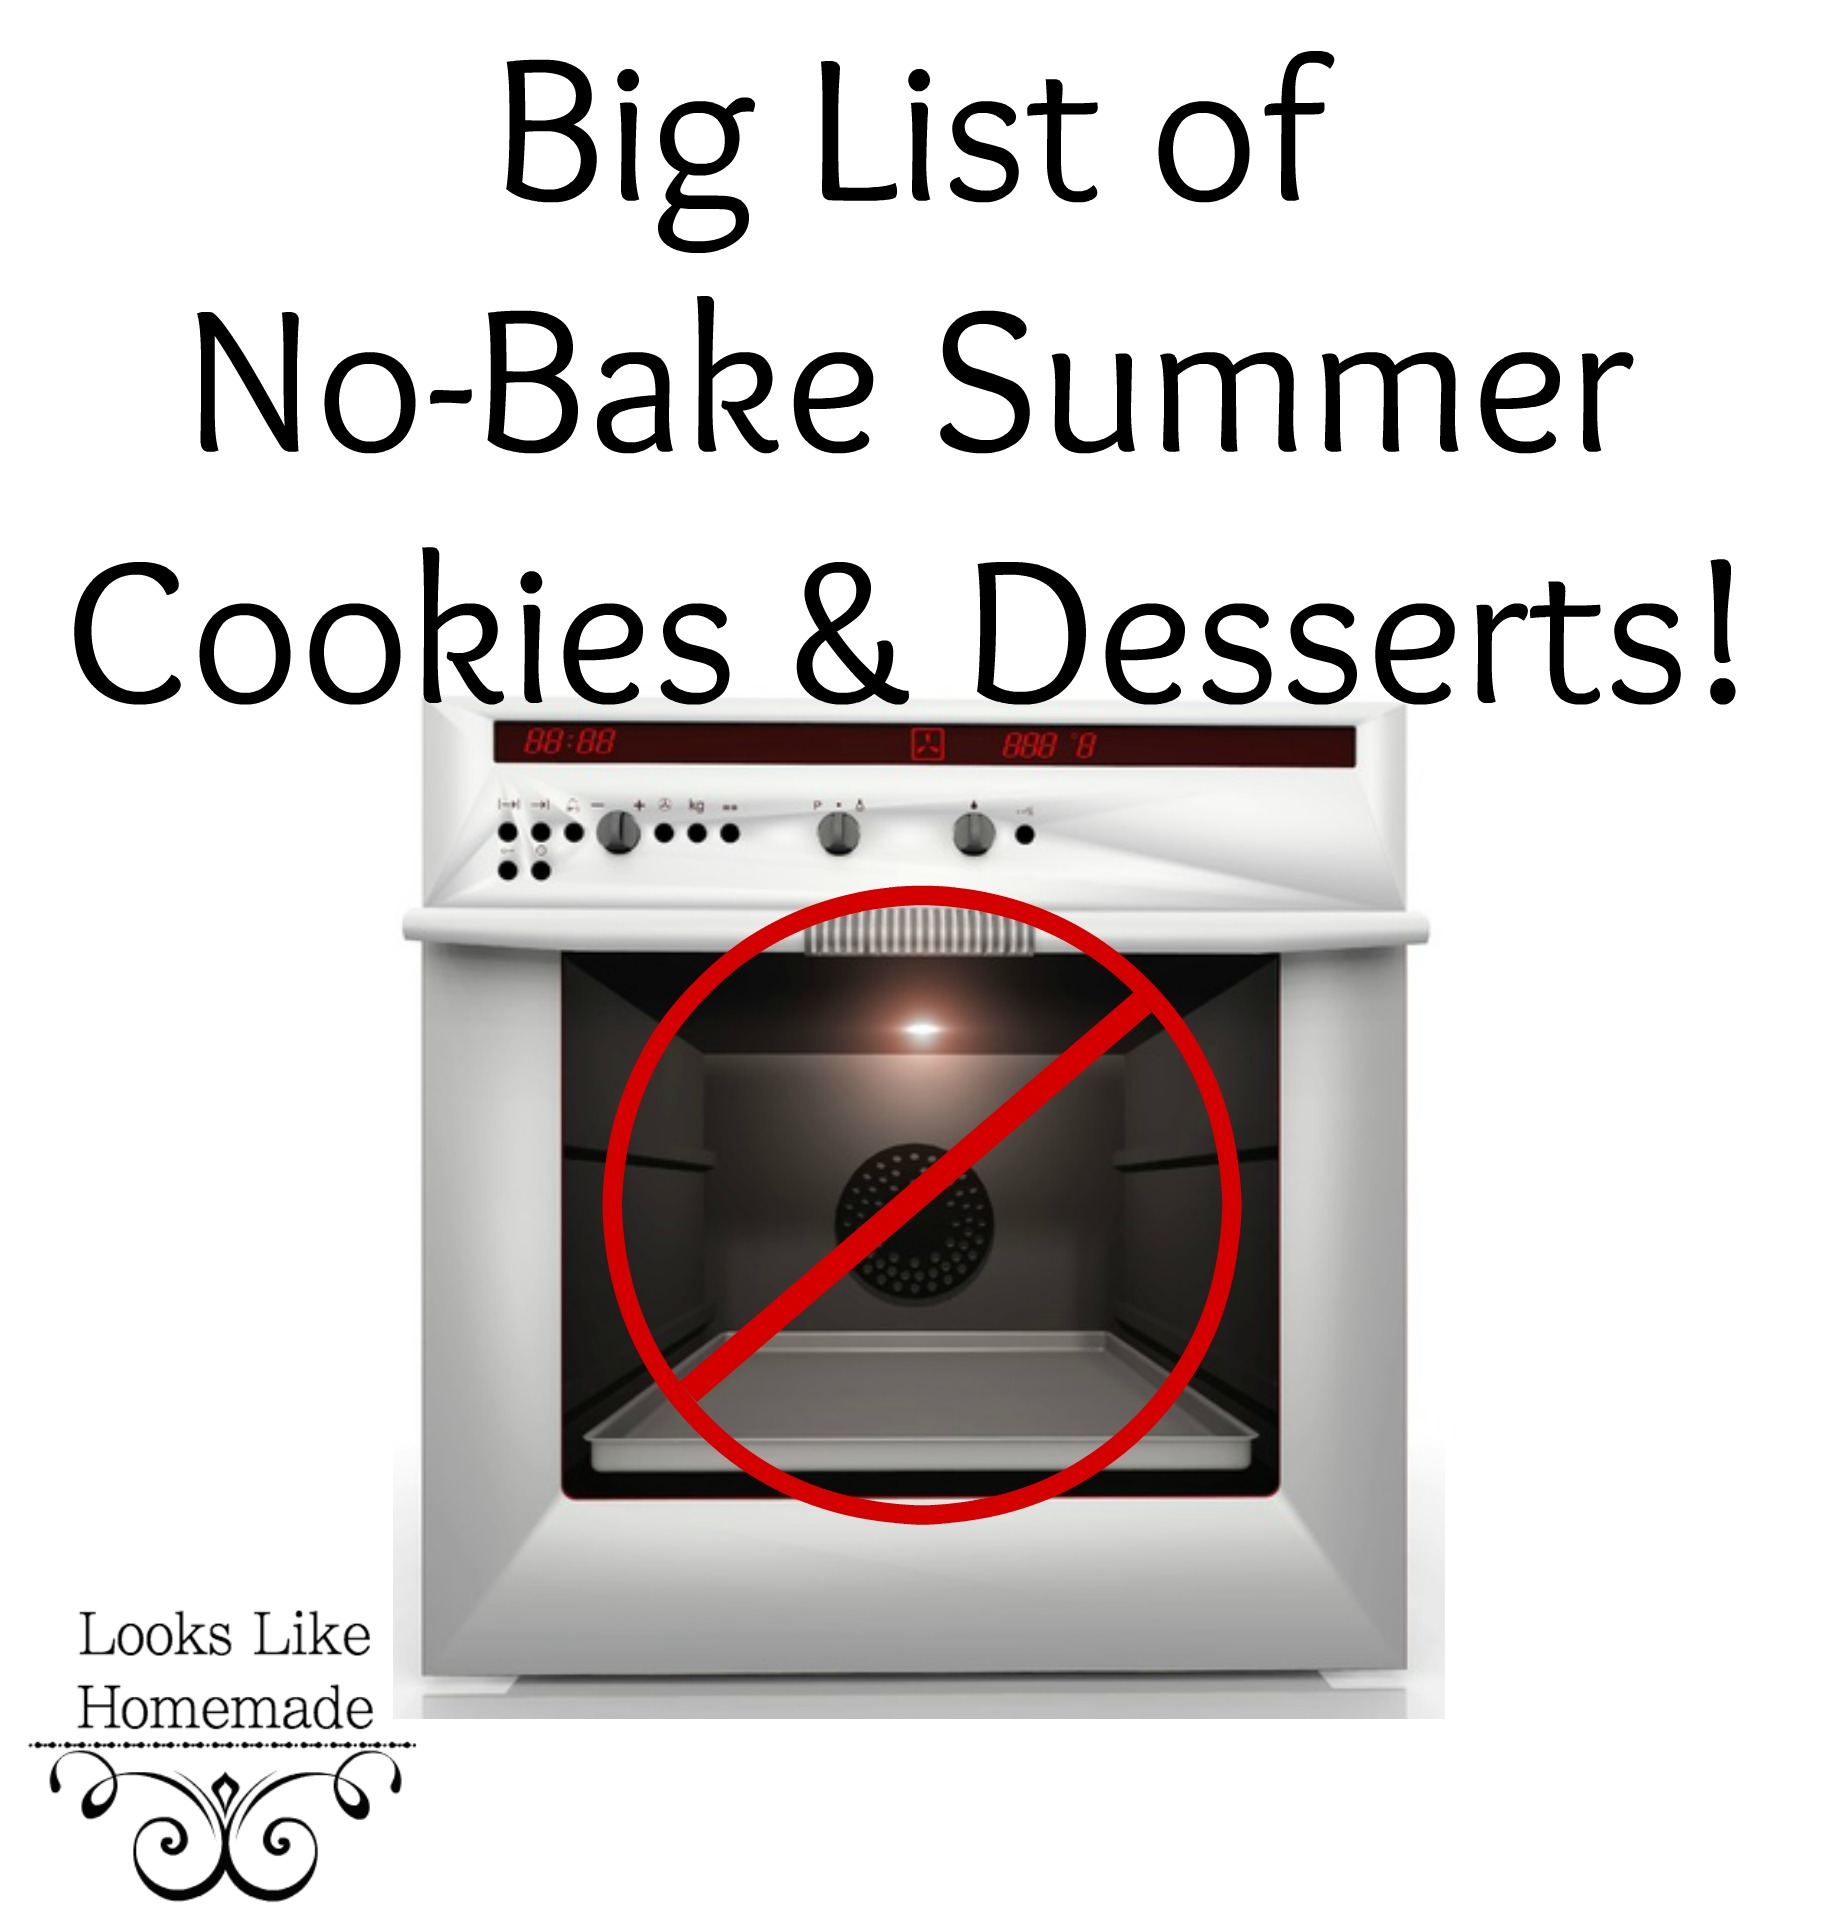 Big List of No-Bake Cookies & Desserts